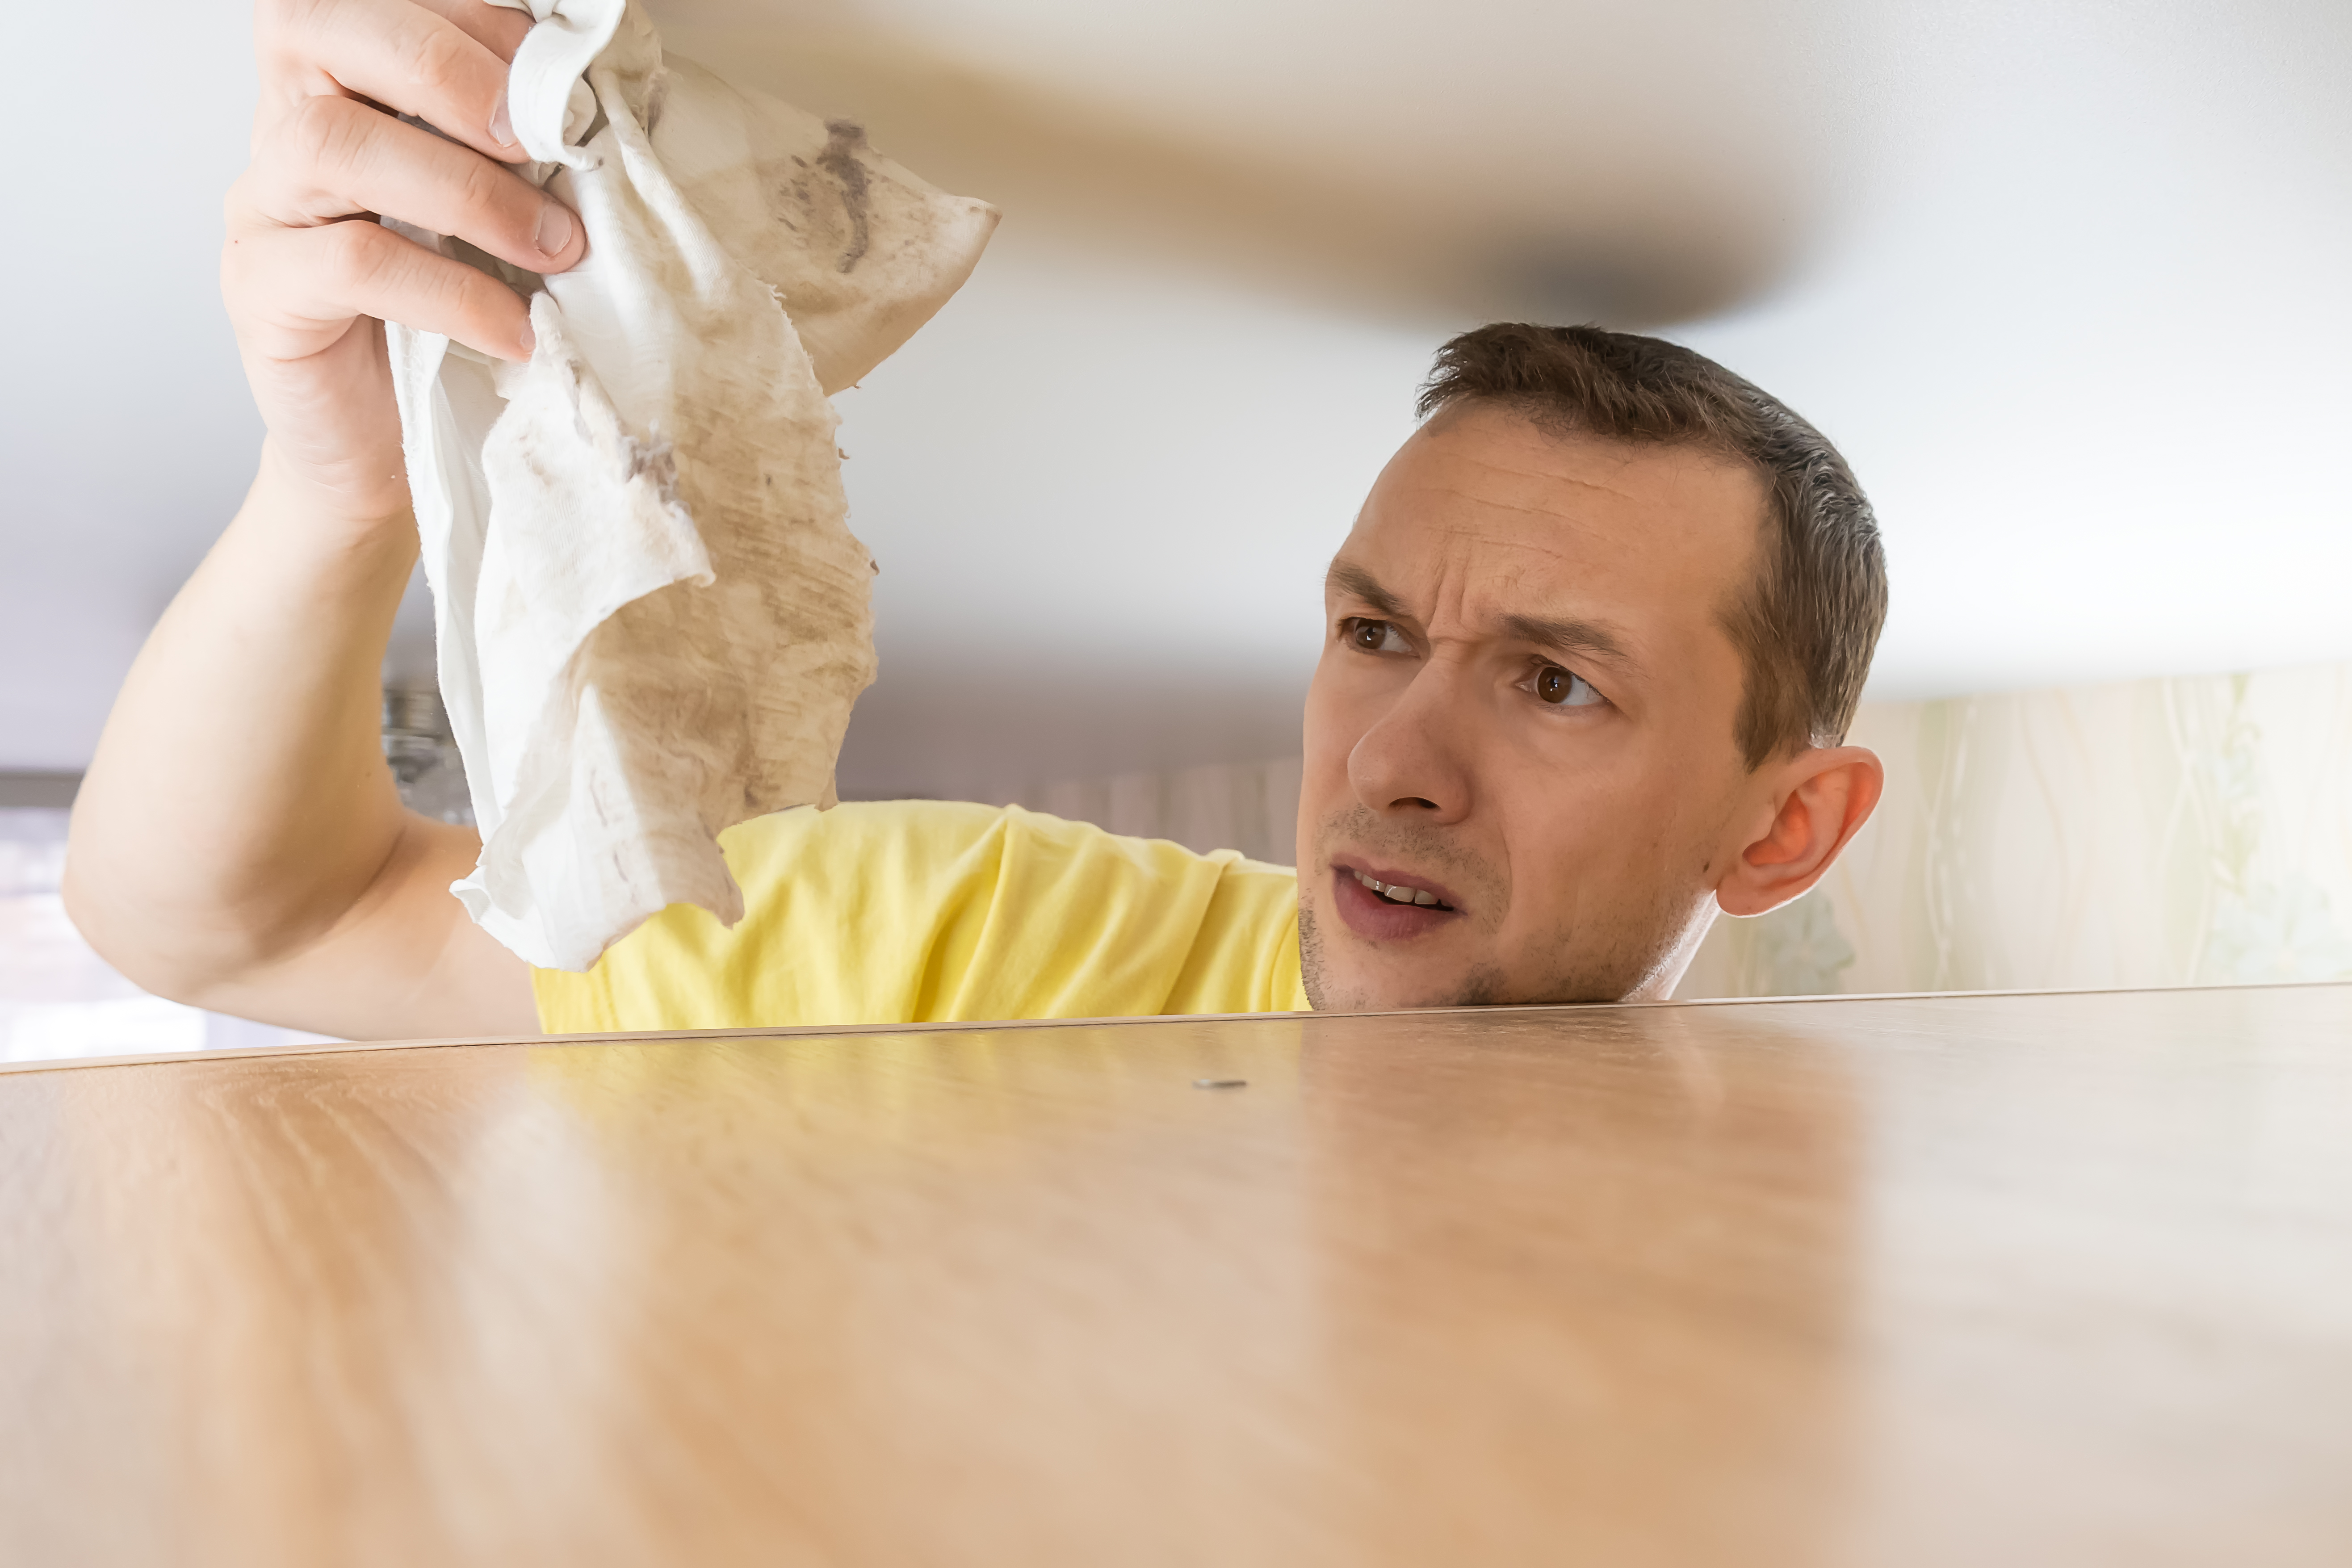 Concept of cleaning the house. a man wipes dust from a tall cabinet in his house. he goes up to the ceiling and looks at the dirty dust rag.